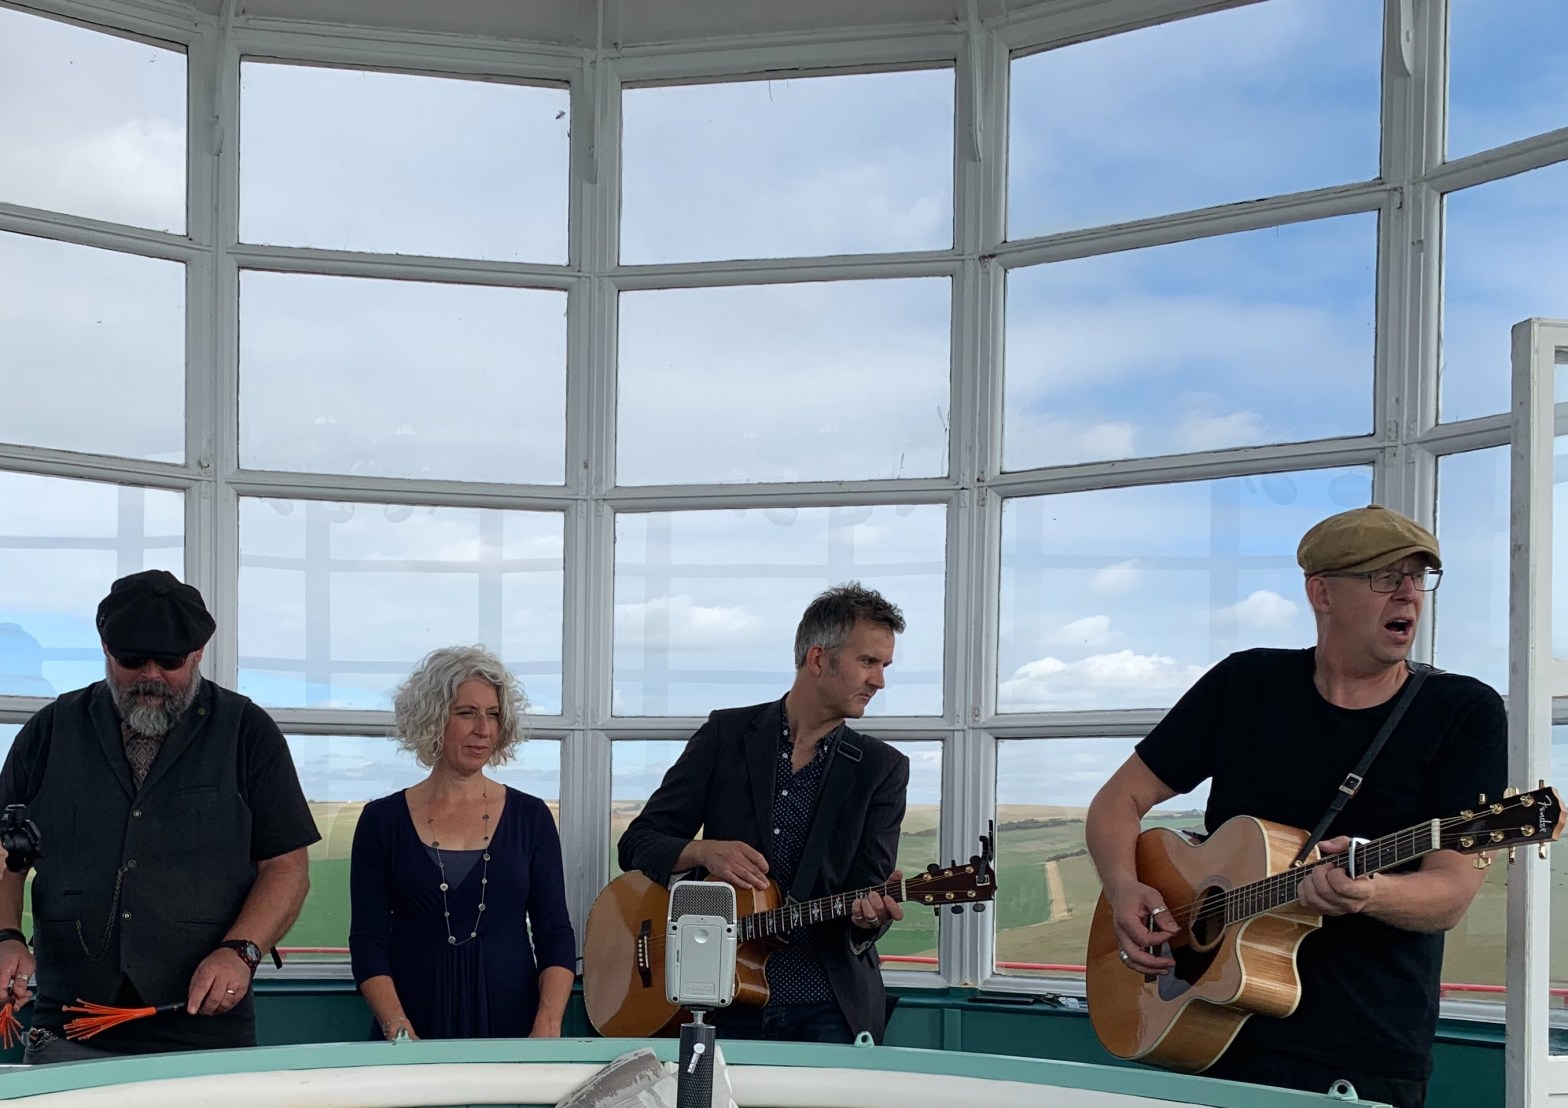 Singing The Light Keeper in lantern room at Belle Tout lighthouse